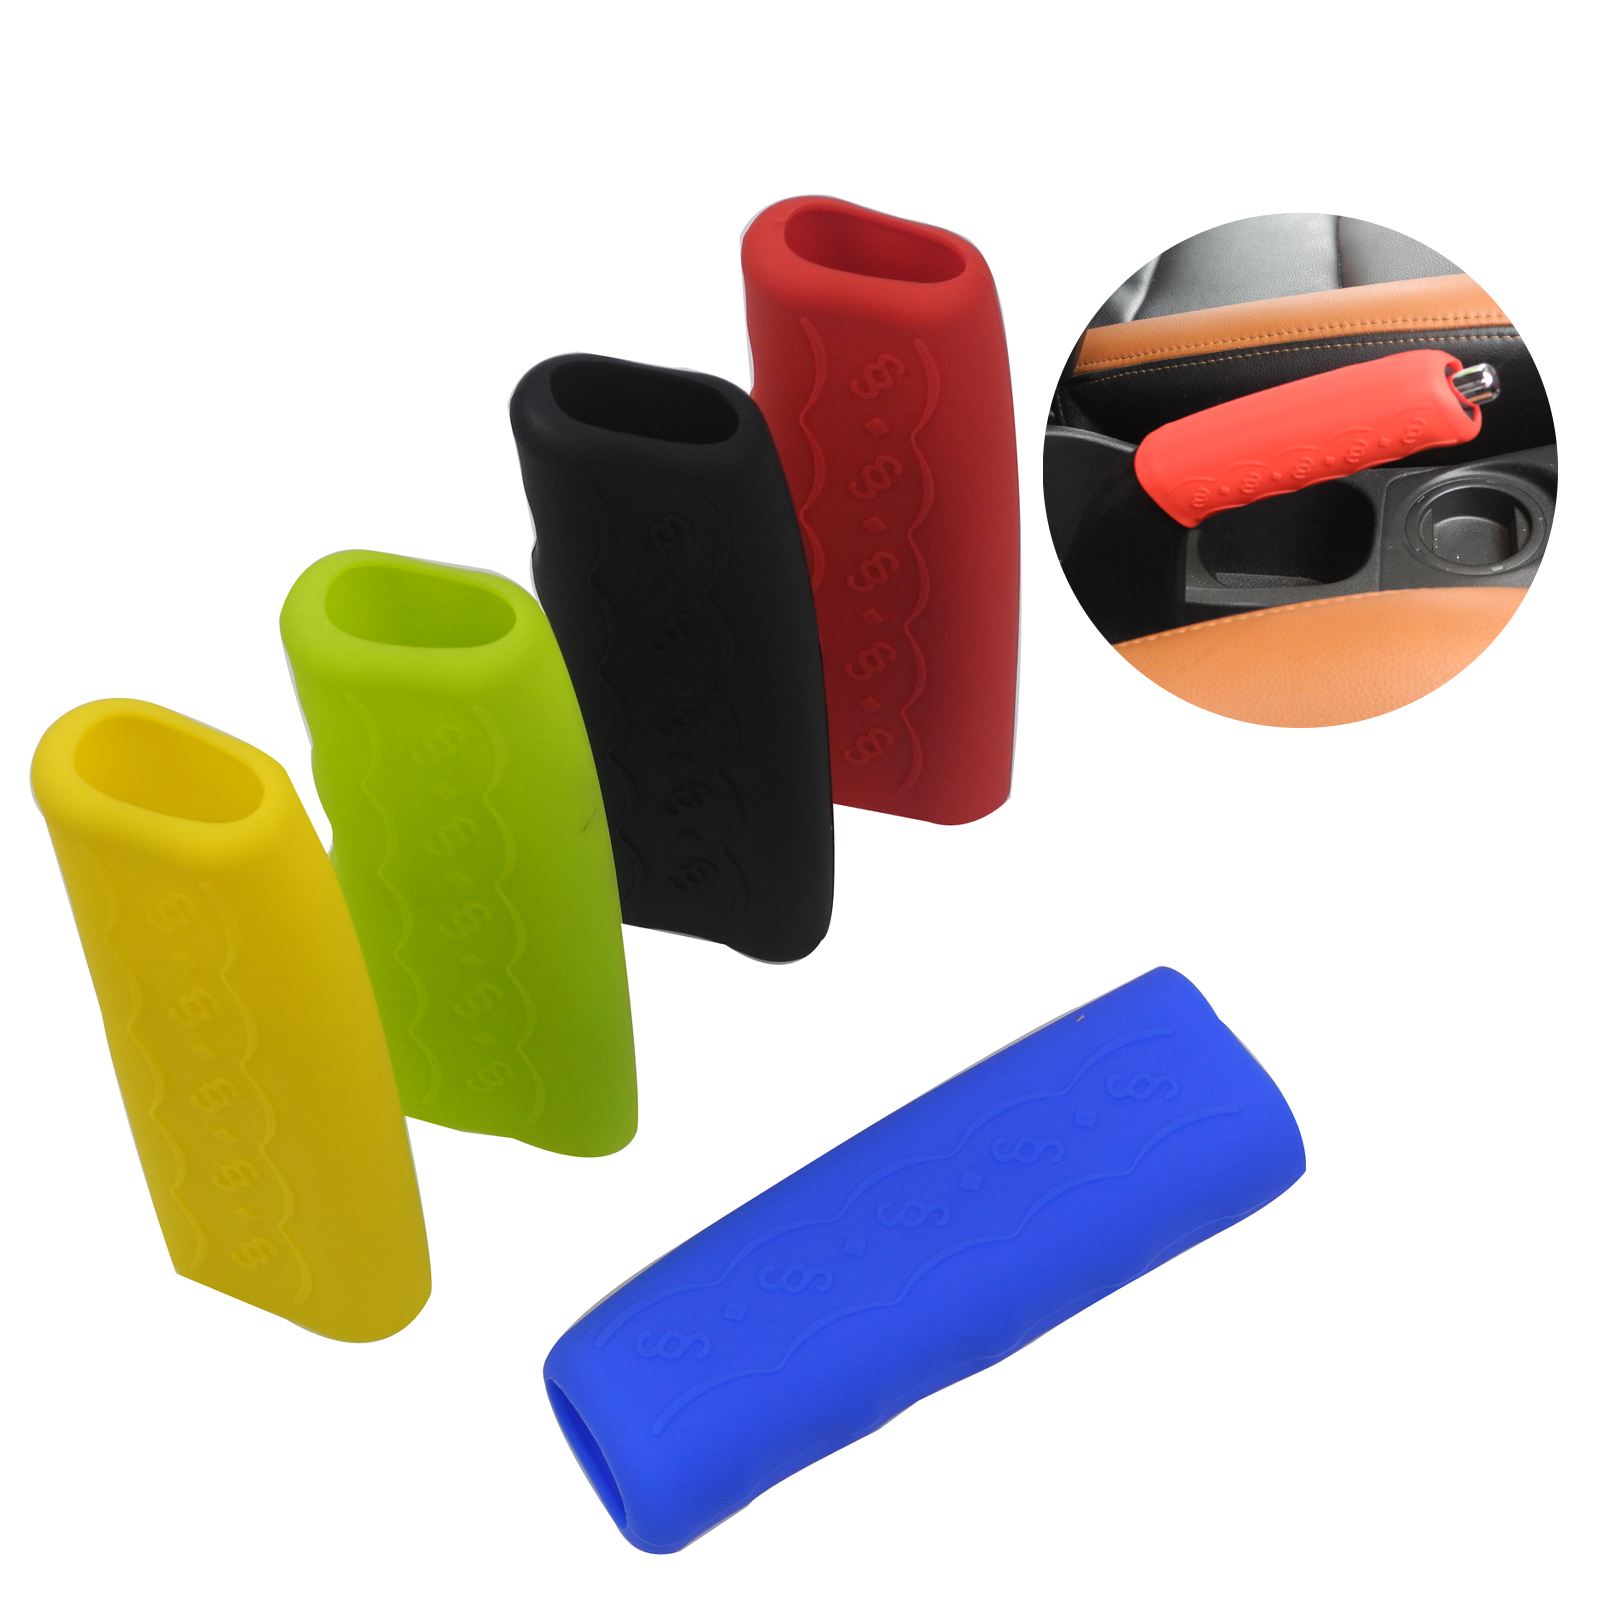 10pcs/lot Car Universal Silicone Handbrake Covers Nonslip Hand Brake Cover Case Gear Knob Sleeve Protector